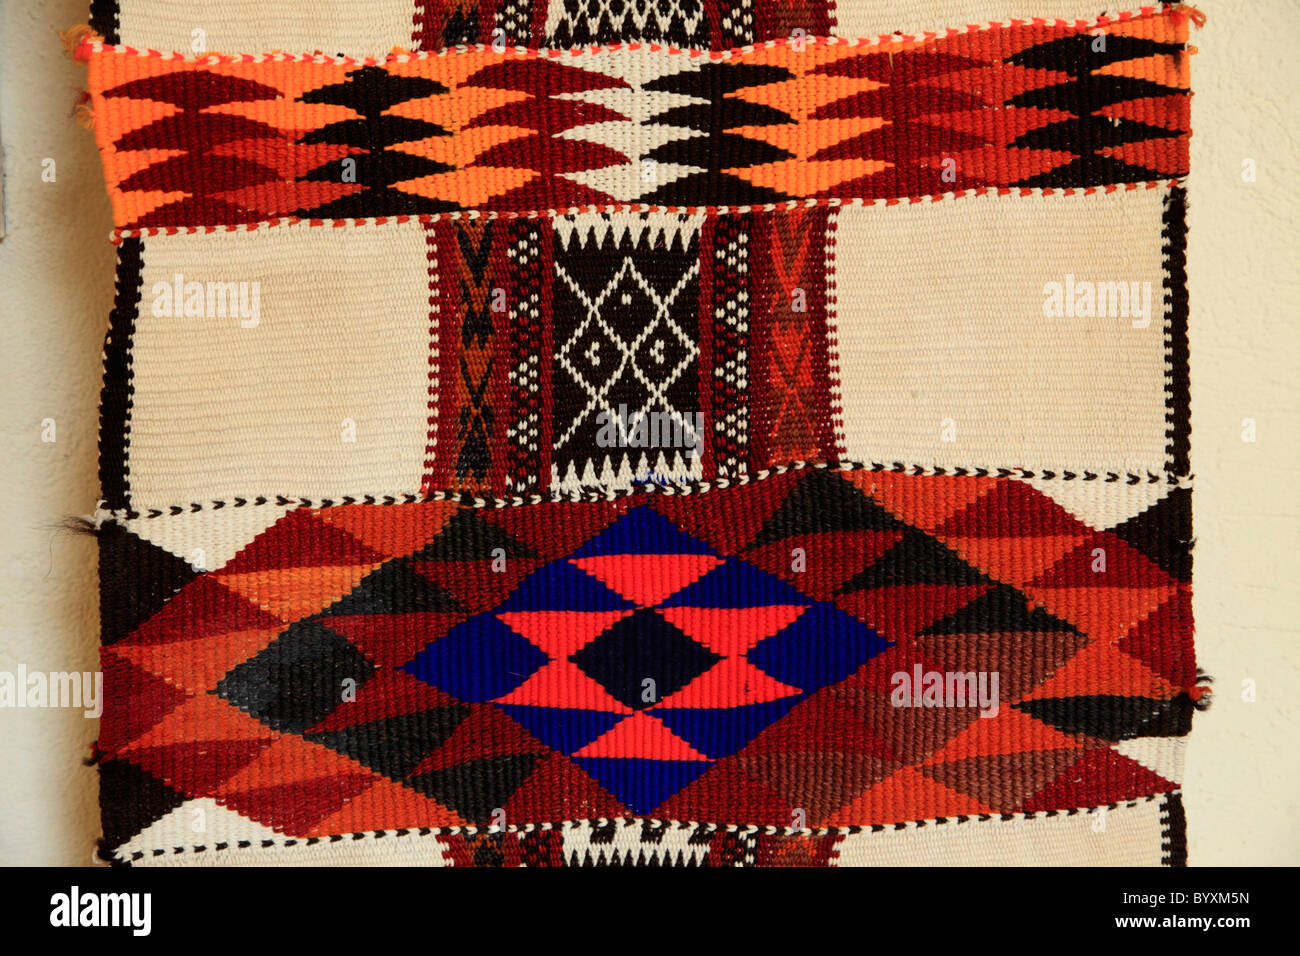 Kuwait, Kuwait City, Sadu House, Beduin carpet, - Stock Image